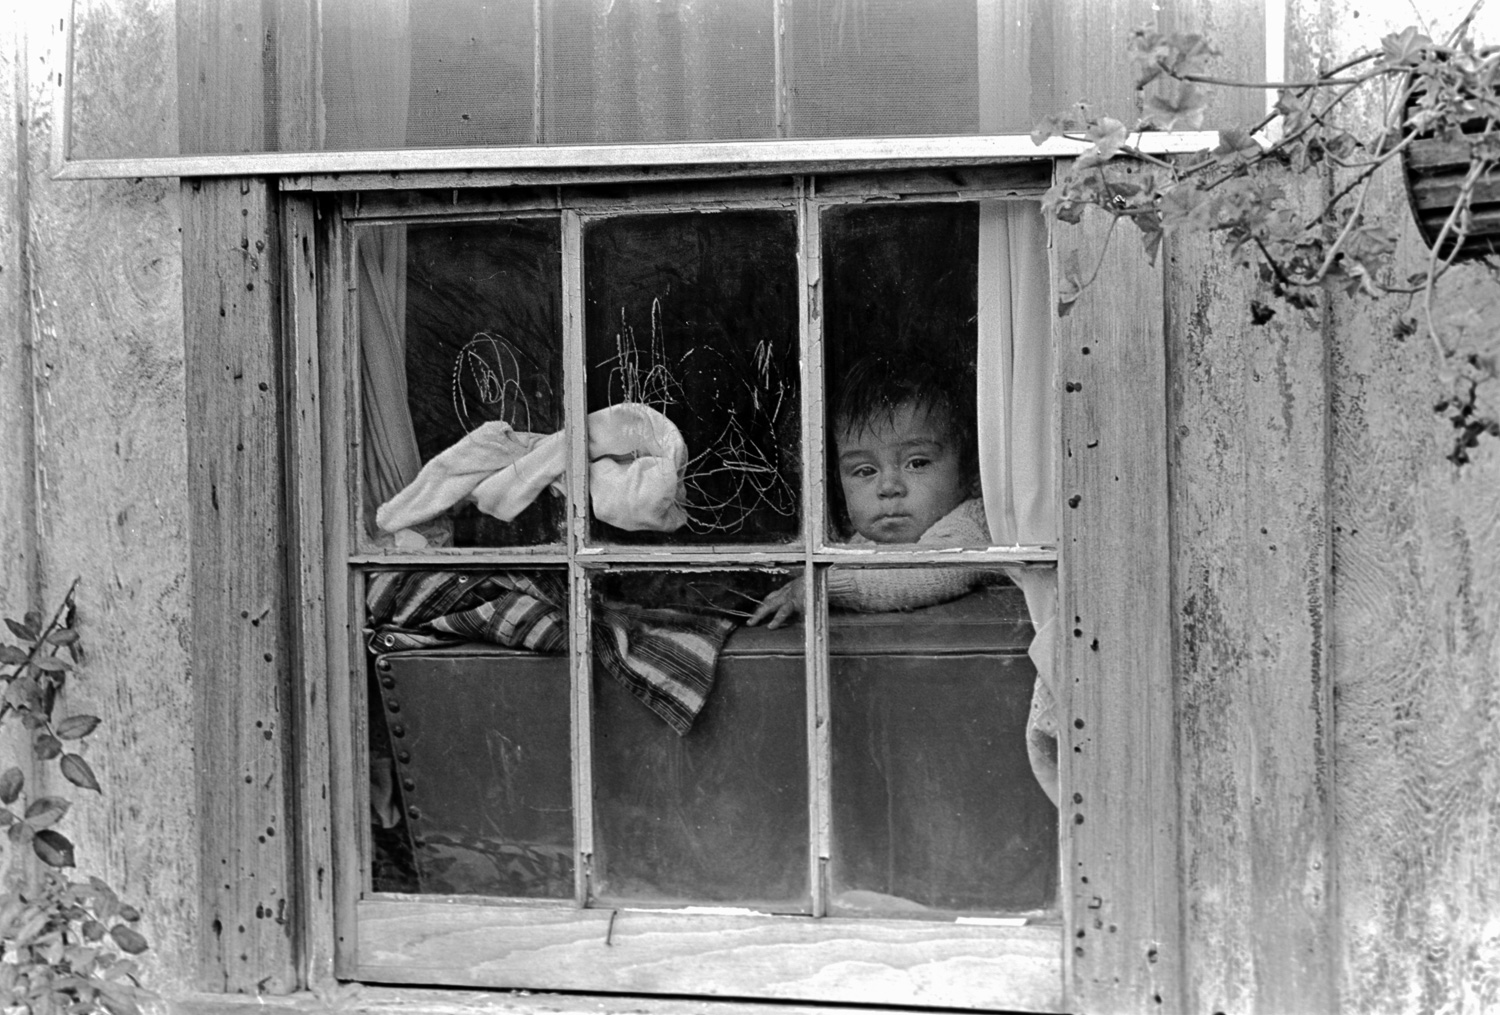 A baby gazes out a window in Watsonville, California. The family home is farm worker housing.